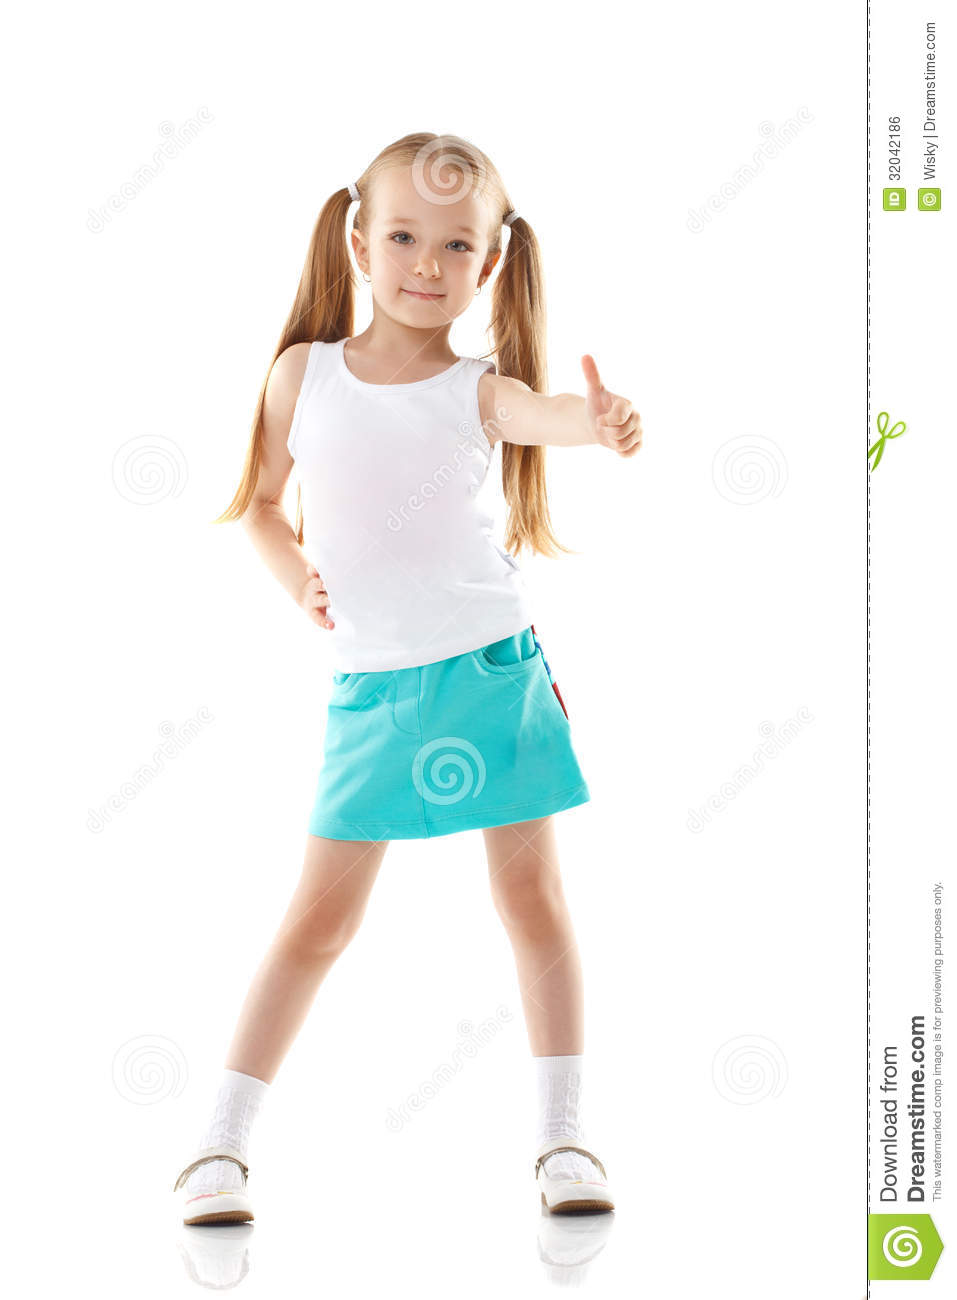 Image of charming little girl showing thumbs up